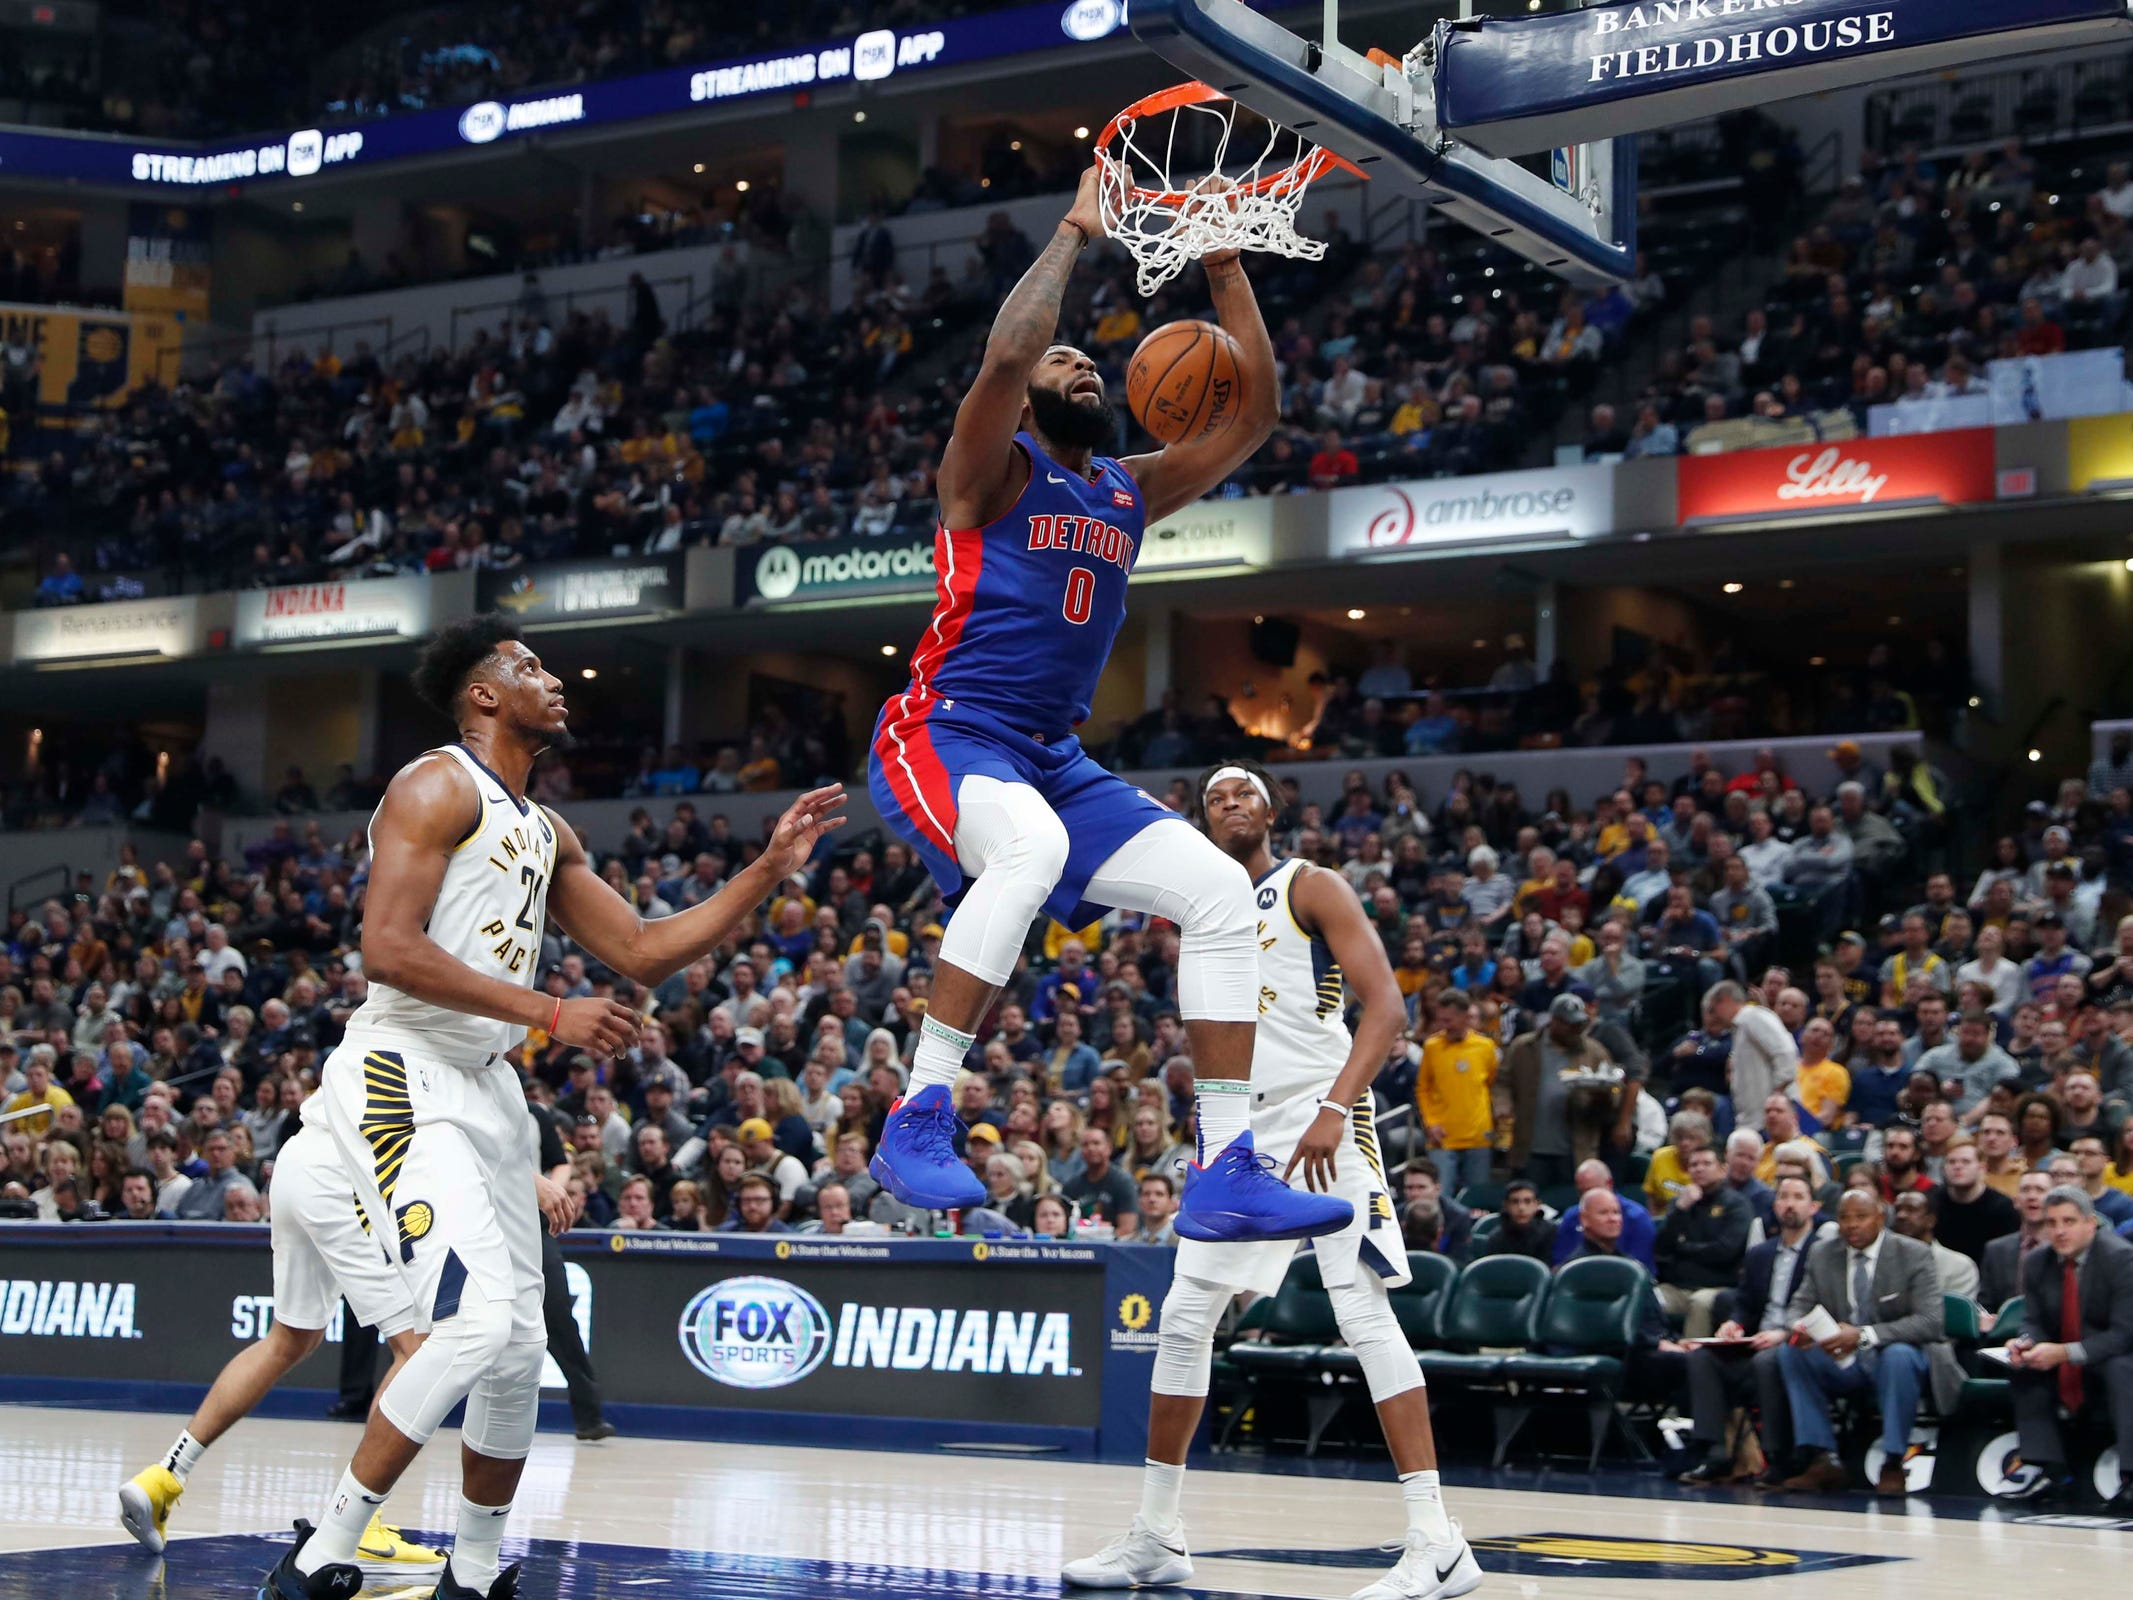 Detroit Pistons center Andre Drummond dunks against the Indiana Pacers during the first quarter Monday, April 1, 2019, in Indianapolis.